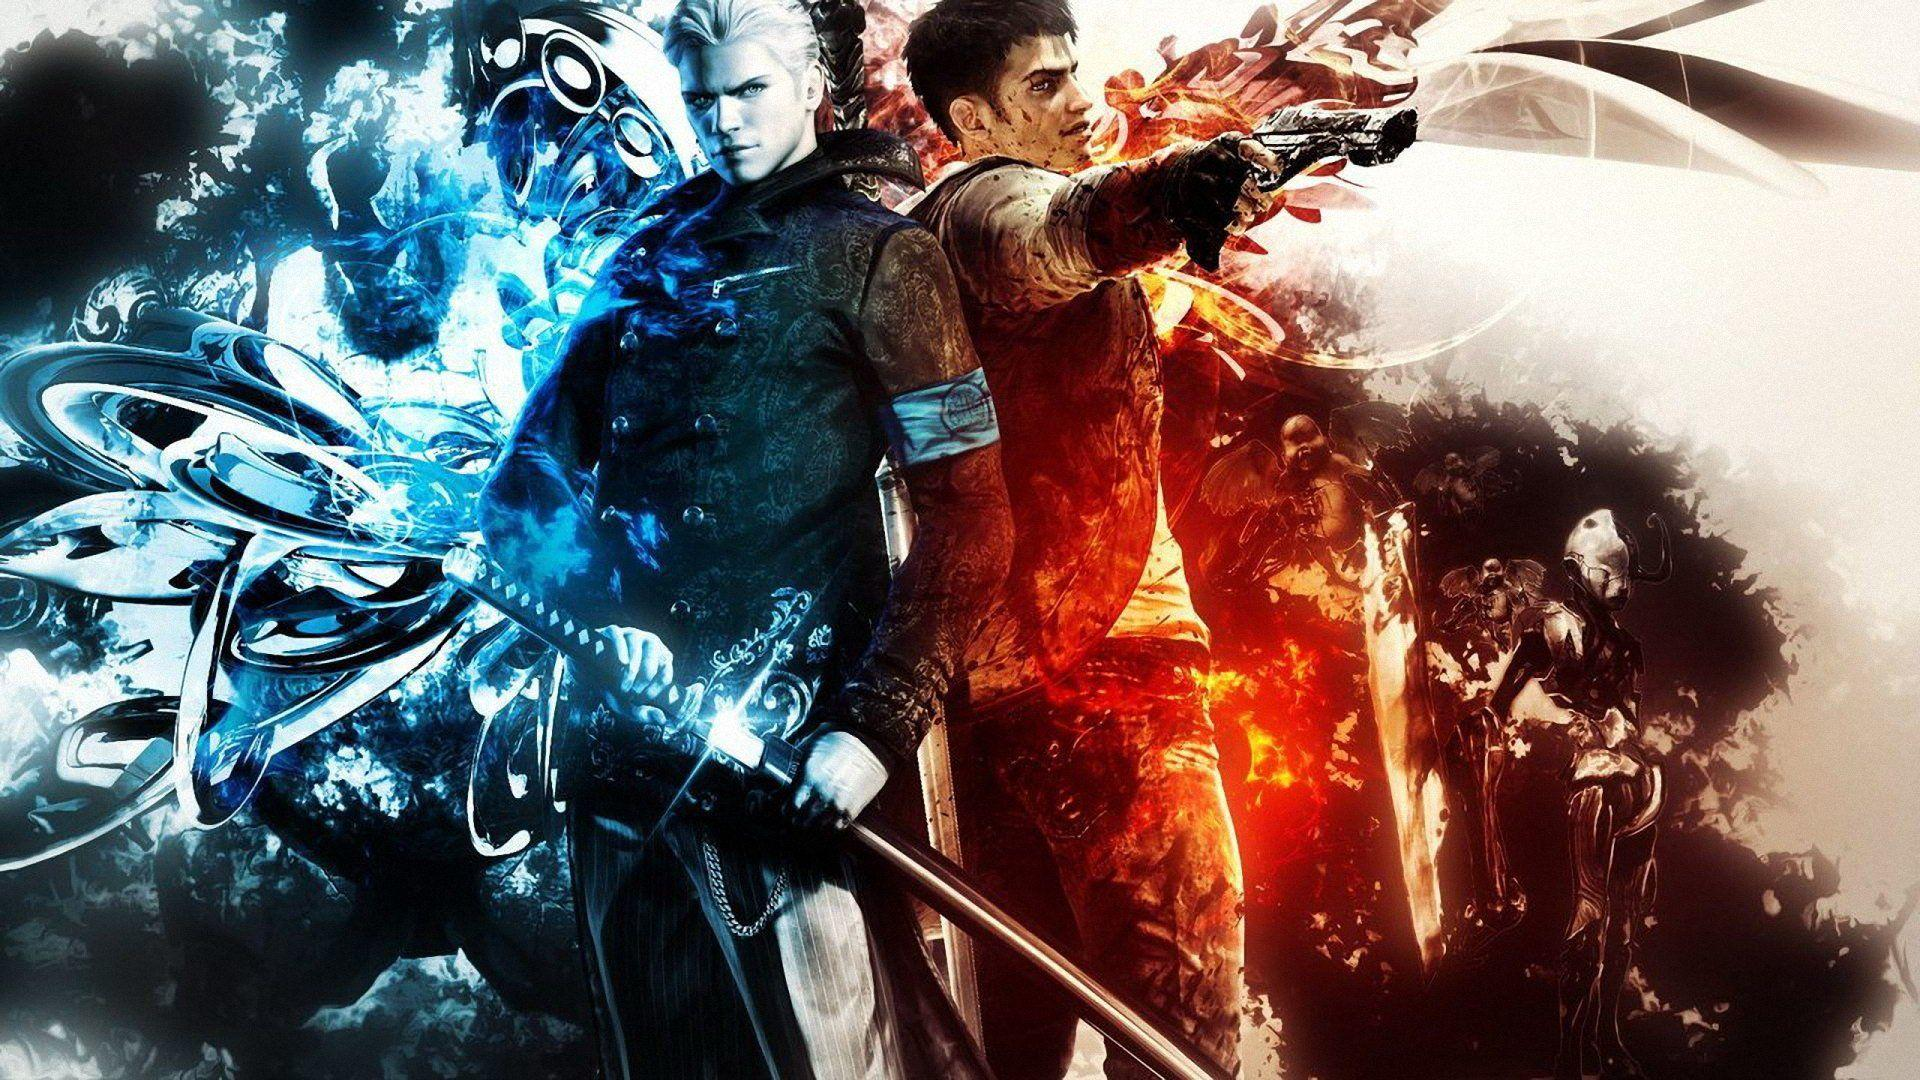 Devil May Cry 5 Wallpapers Wallpaper Cave